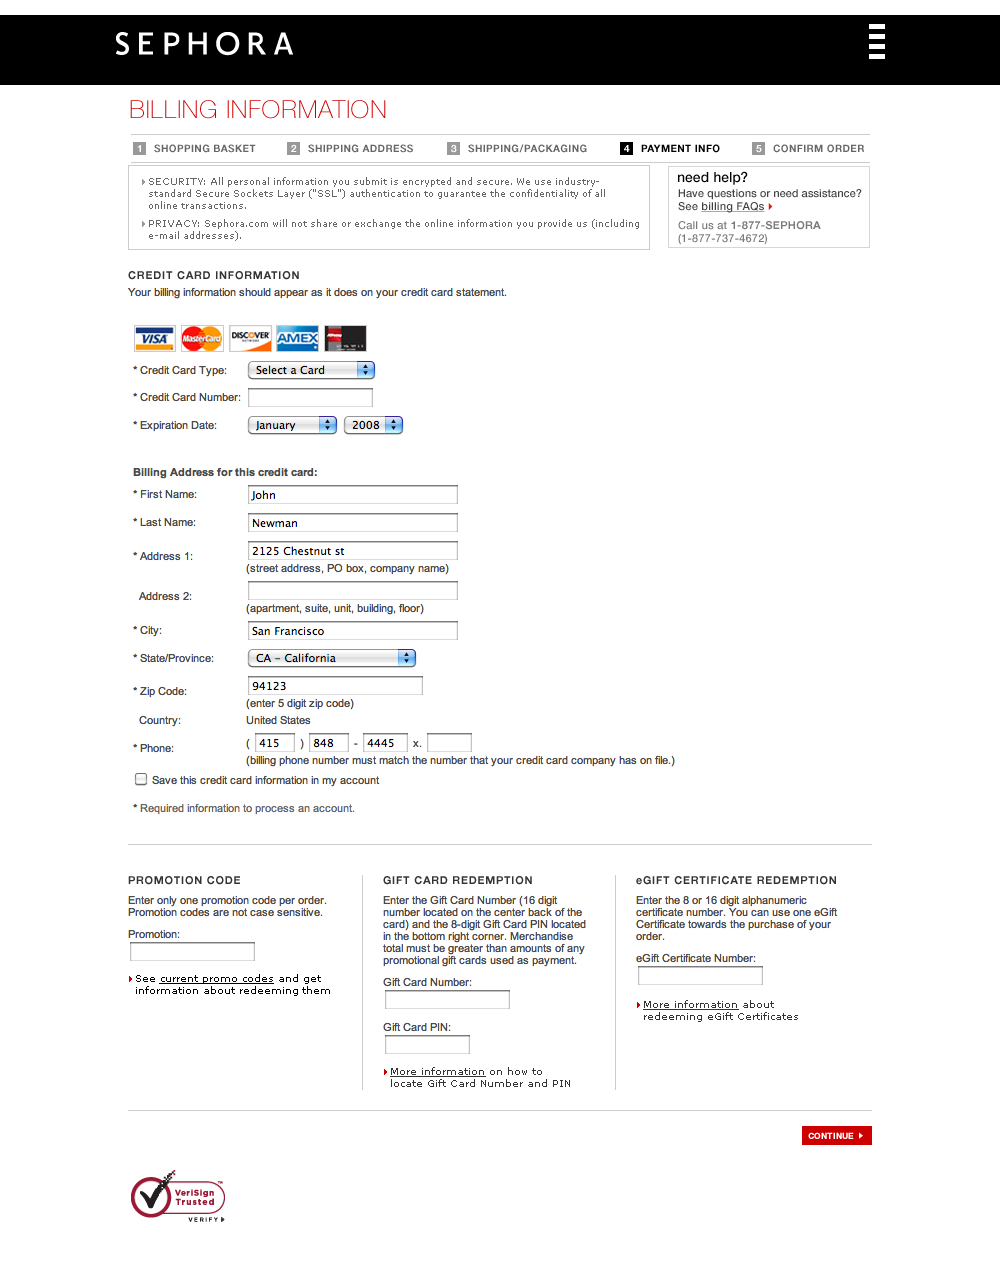 Sephora's Billing address and Payment Checkout Step